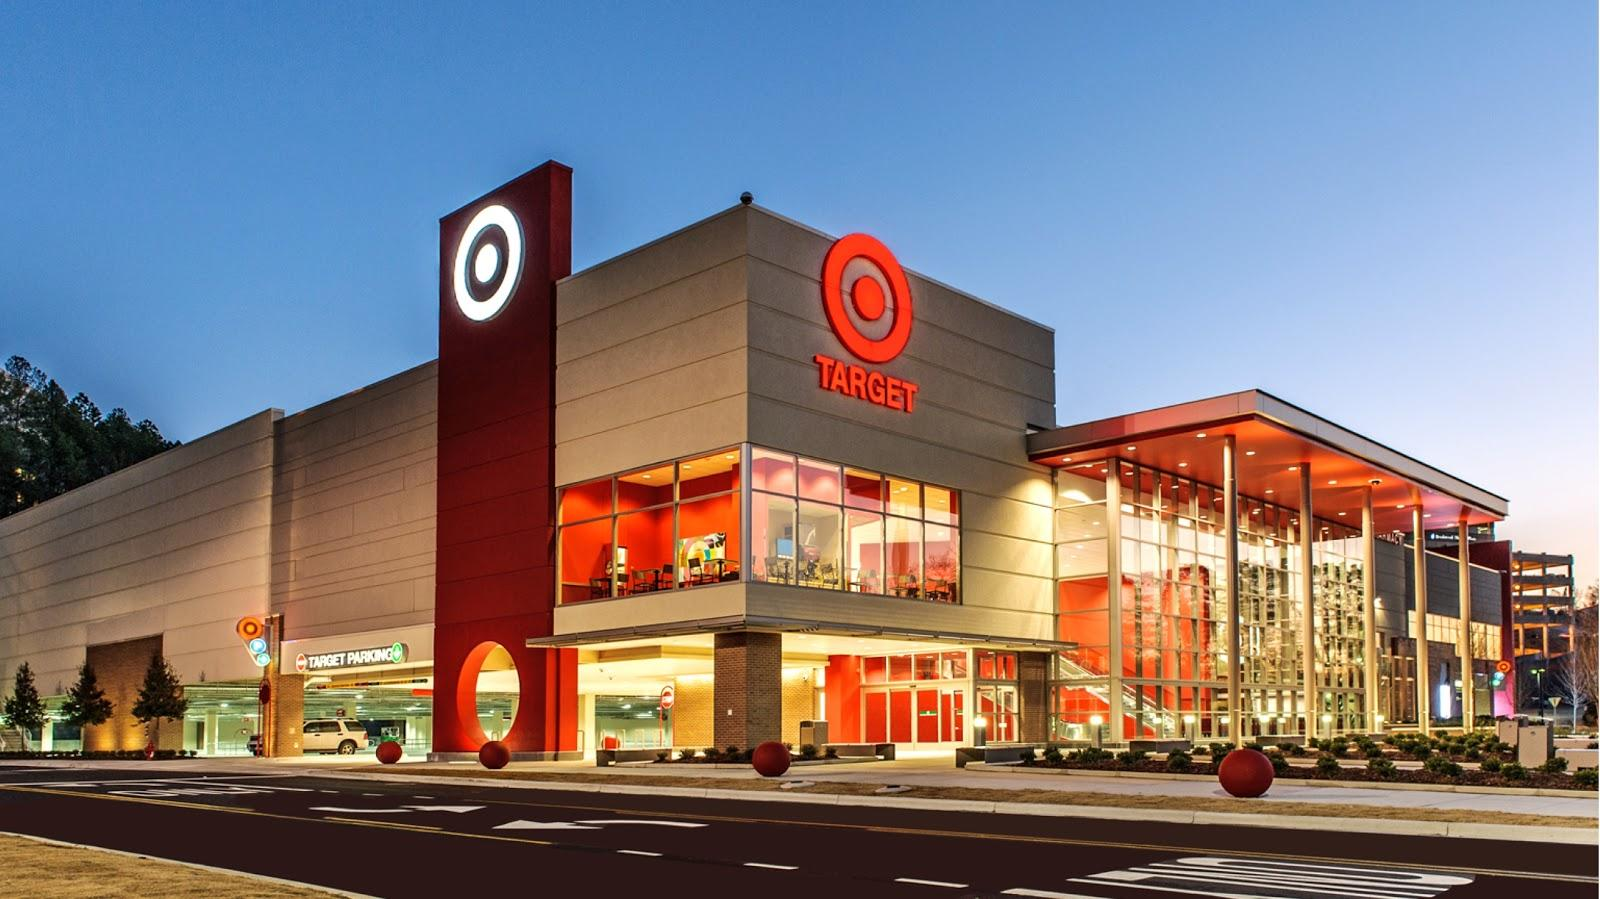 target corp Get target corp (tgt:nyse) real-time stock quotes, news and financial information from cnbc.